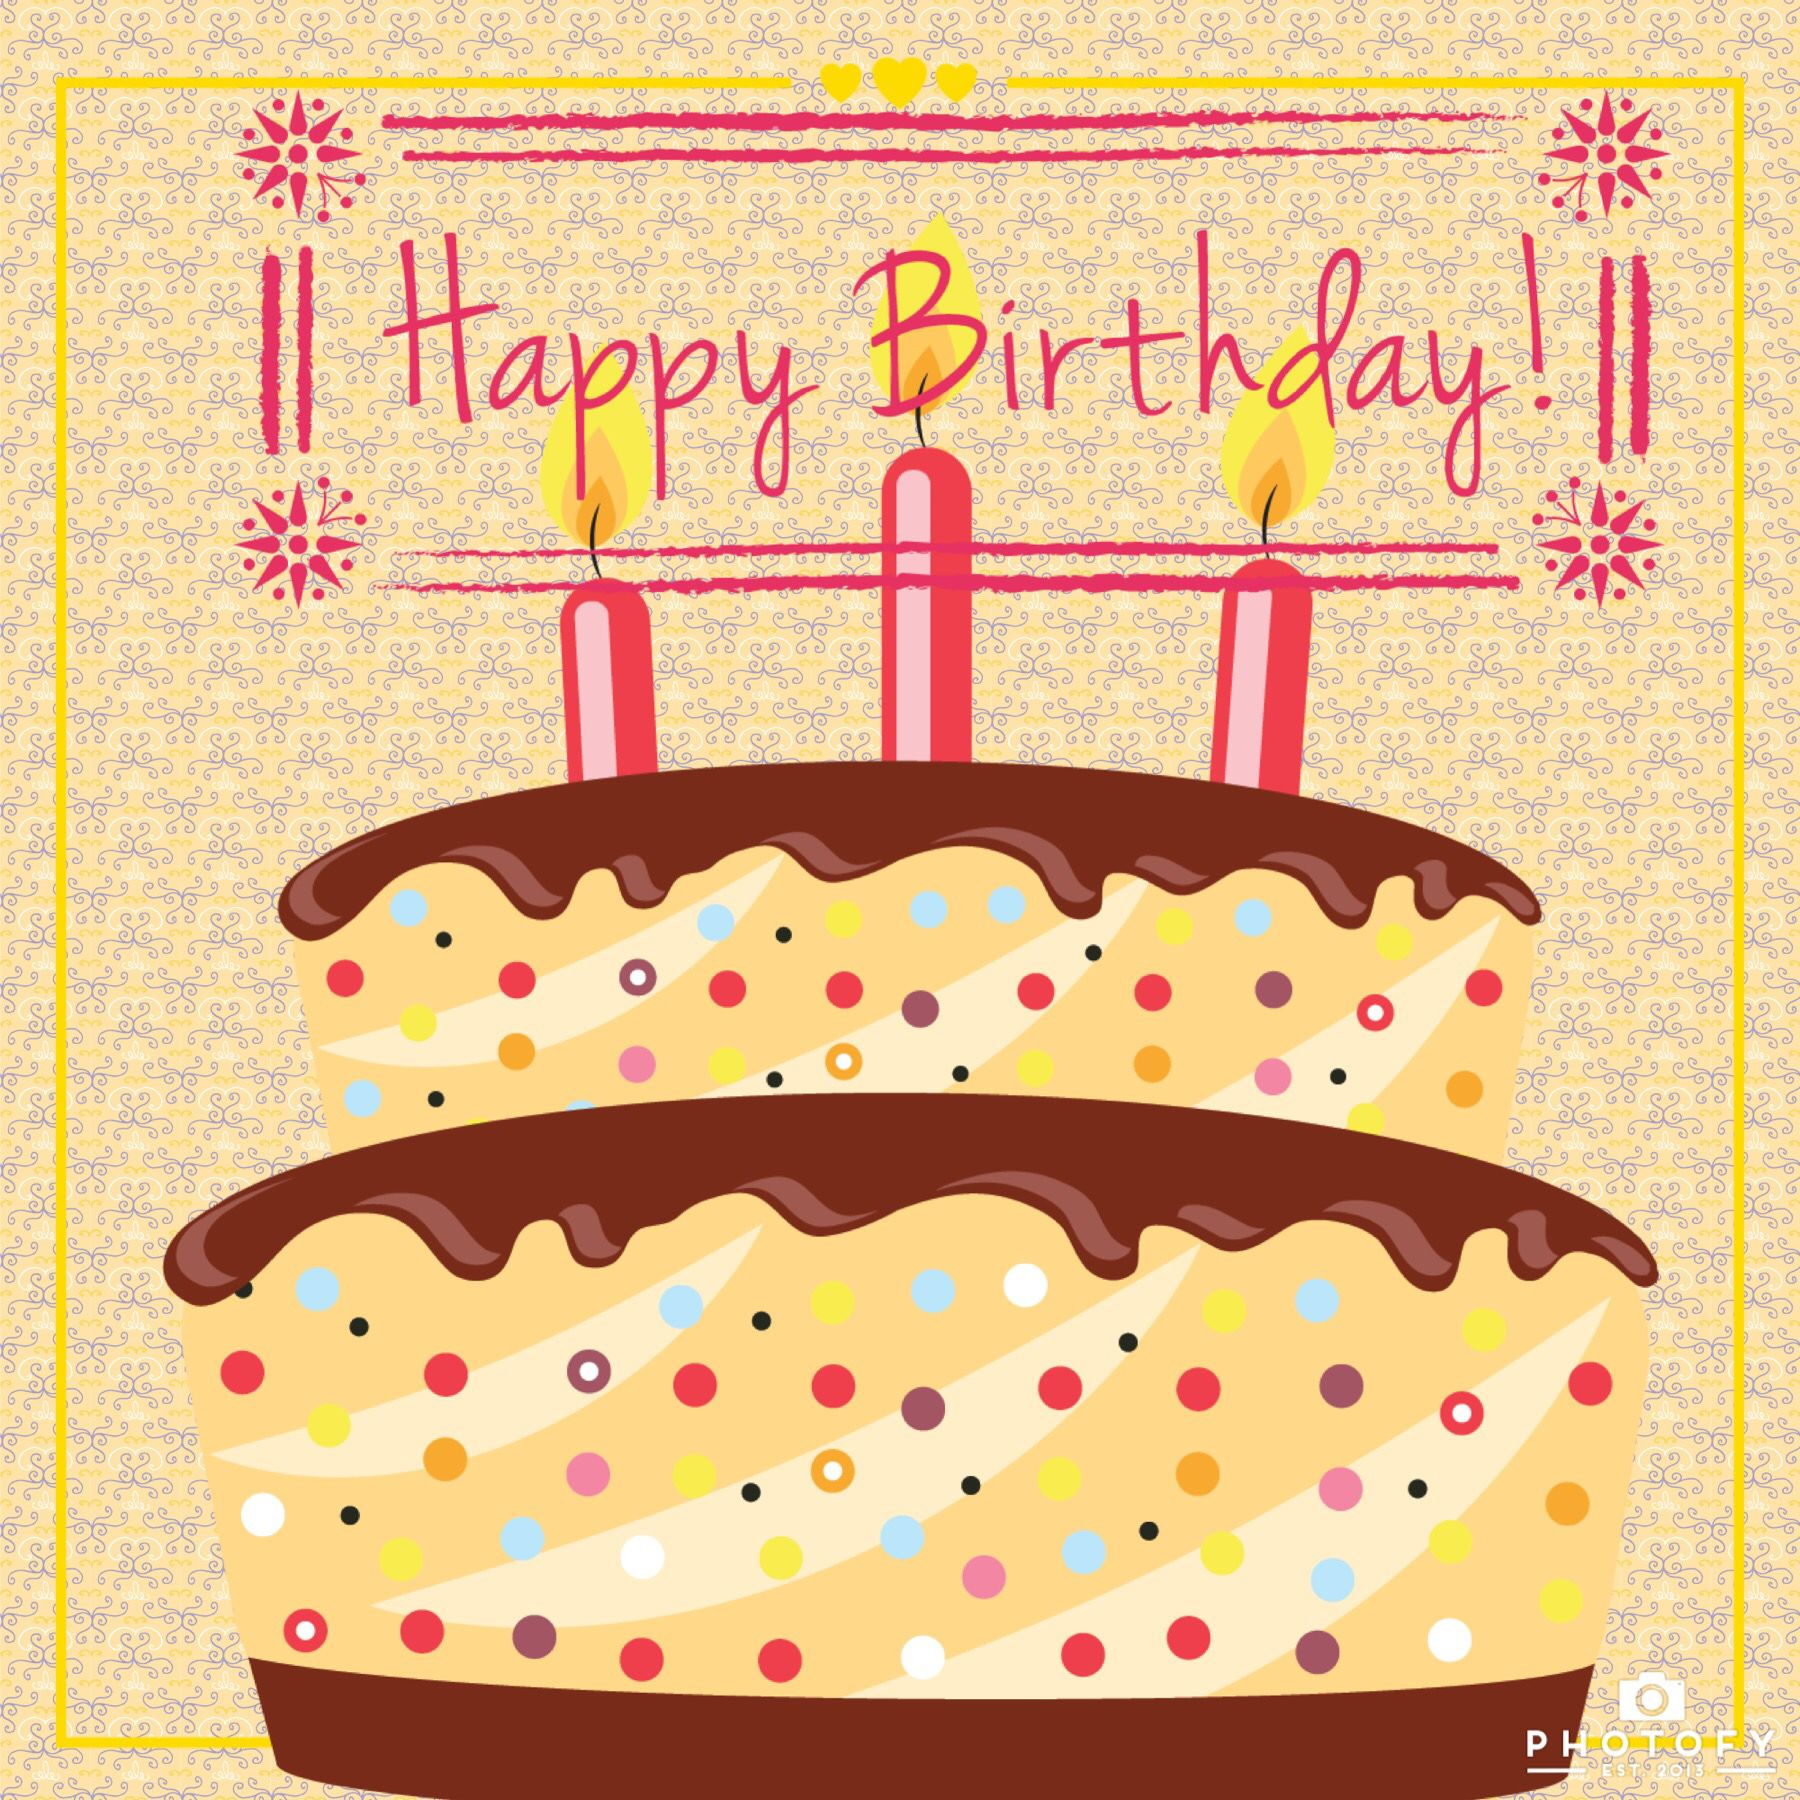 Pin by grammie newman on birthday pinterest birthdays happy birthday greetings birthday wishes birthday cards happy birthday business cards celebration birthdays anniversary messages kristyandbryce Image collections